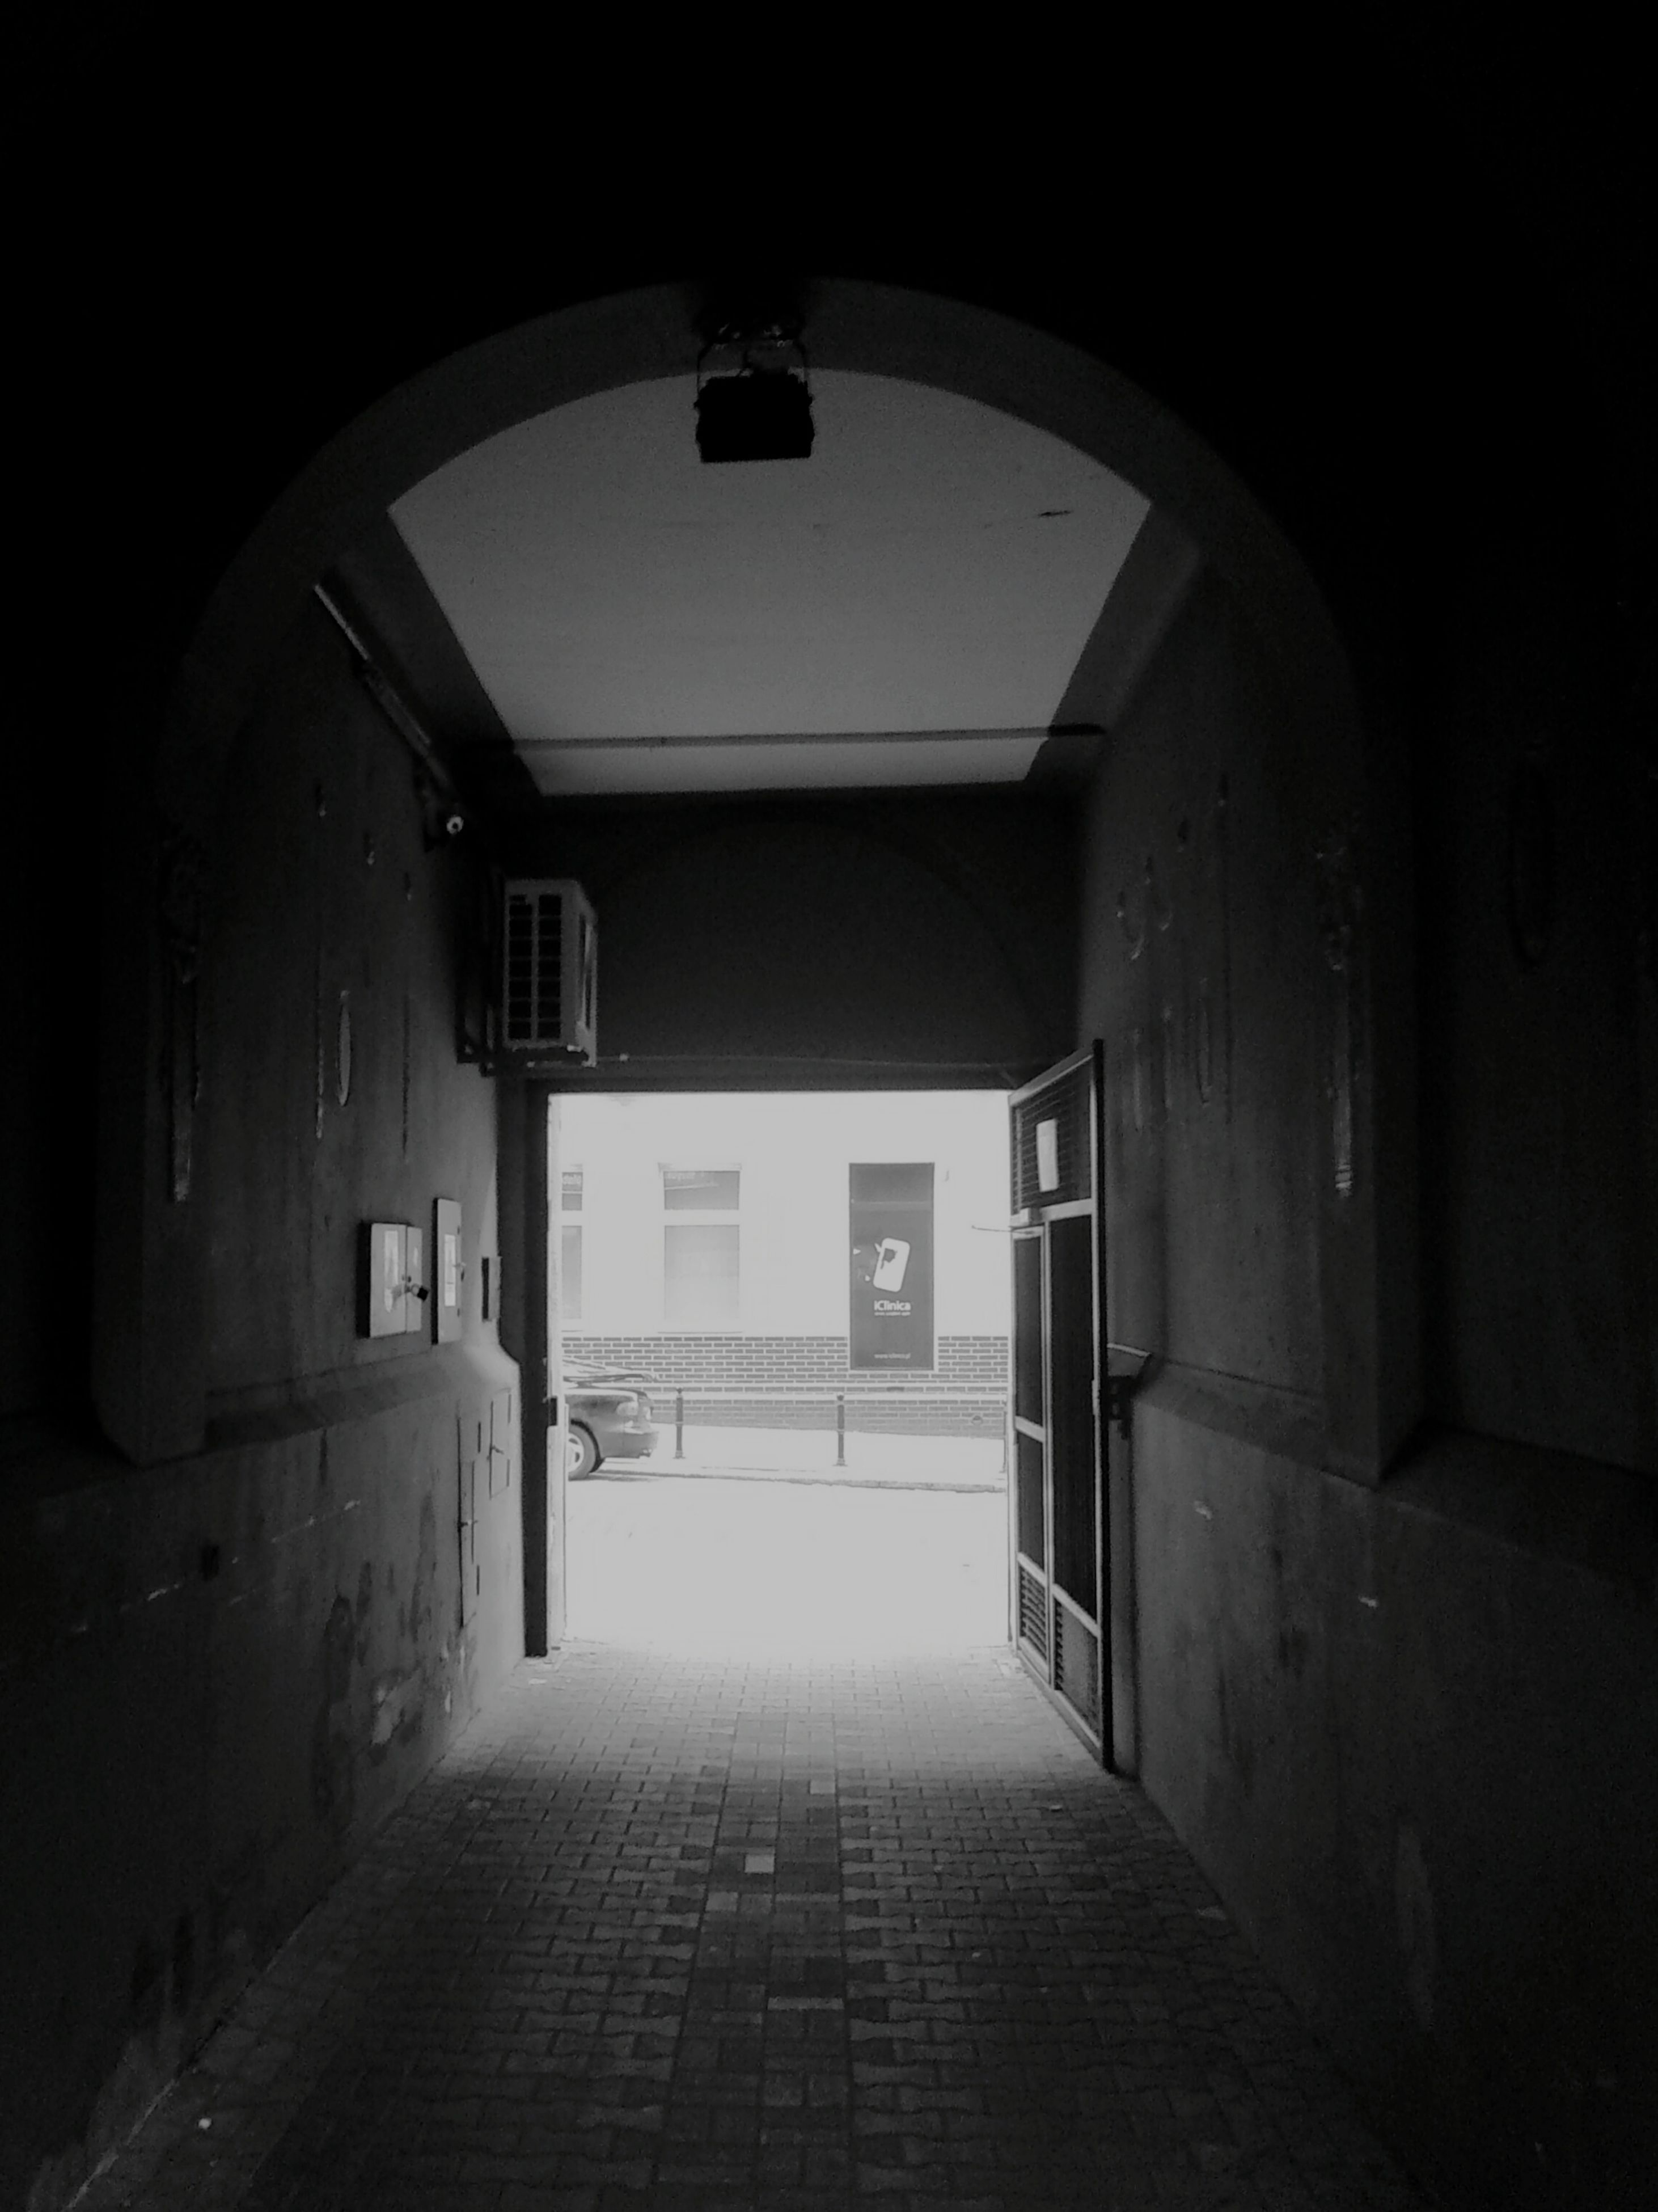 architecture, built structure, the way forward, building exterior, arch, corridor, indoors, narrow, building, door, empty, alley, diminishing perspective, entrance, wall - building feature, archway, walkway, wall, house, residential structure